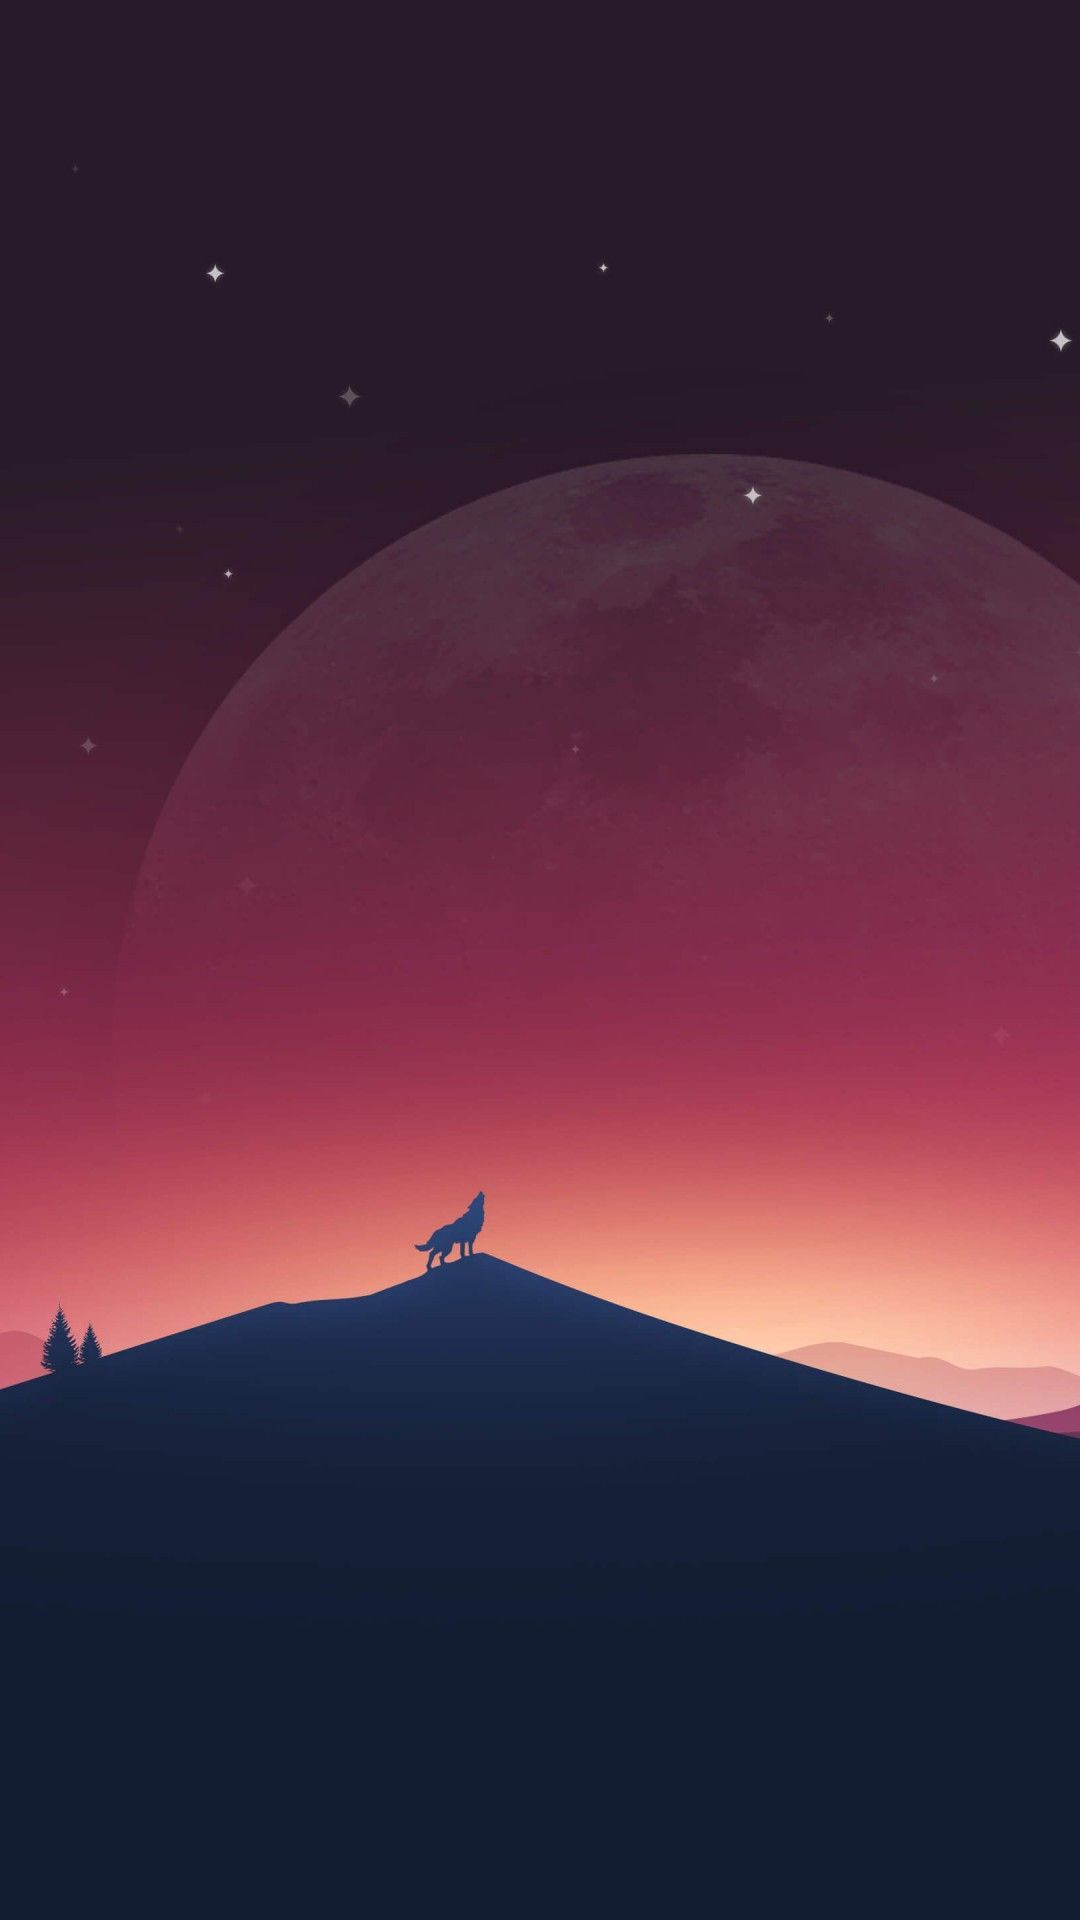 Download Wolf Howling At The Moon Hd Wallpaper For Xperia Z2 Christmas Wallpapers Tumblr Wolf Wallpaper Christmas Tree Art